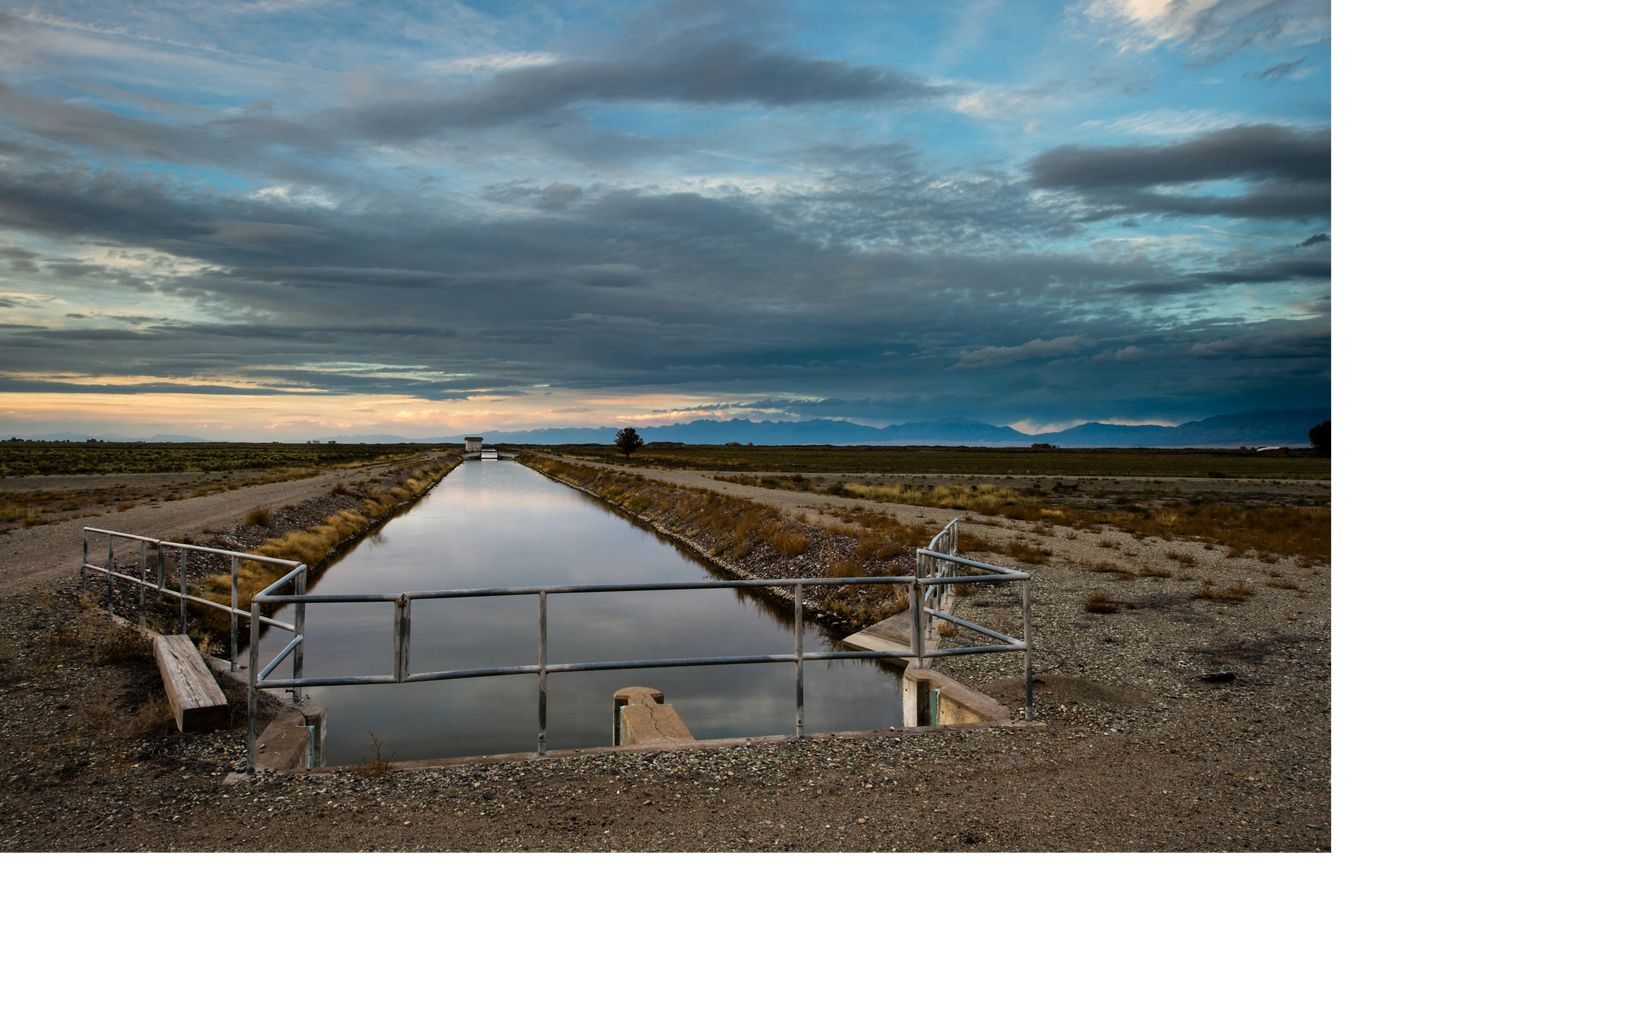 Irrigation channel stretching across the San Luis Valley in Colorado.